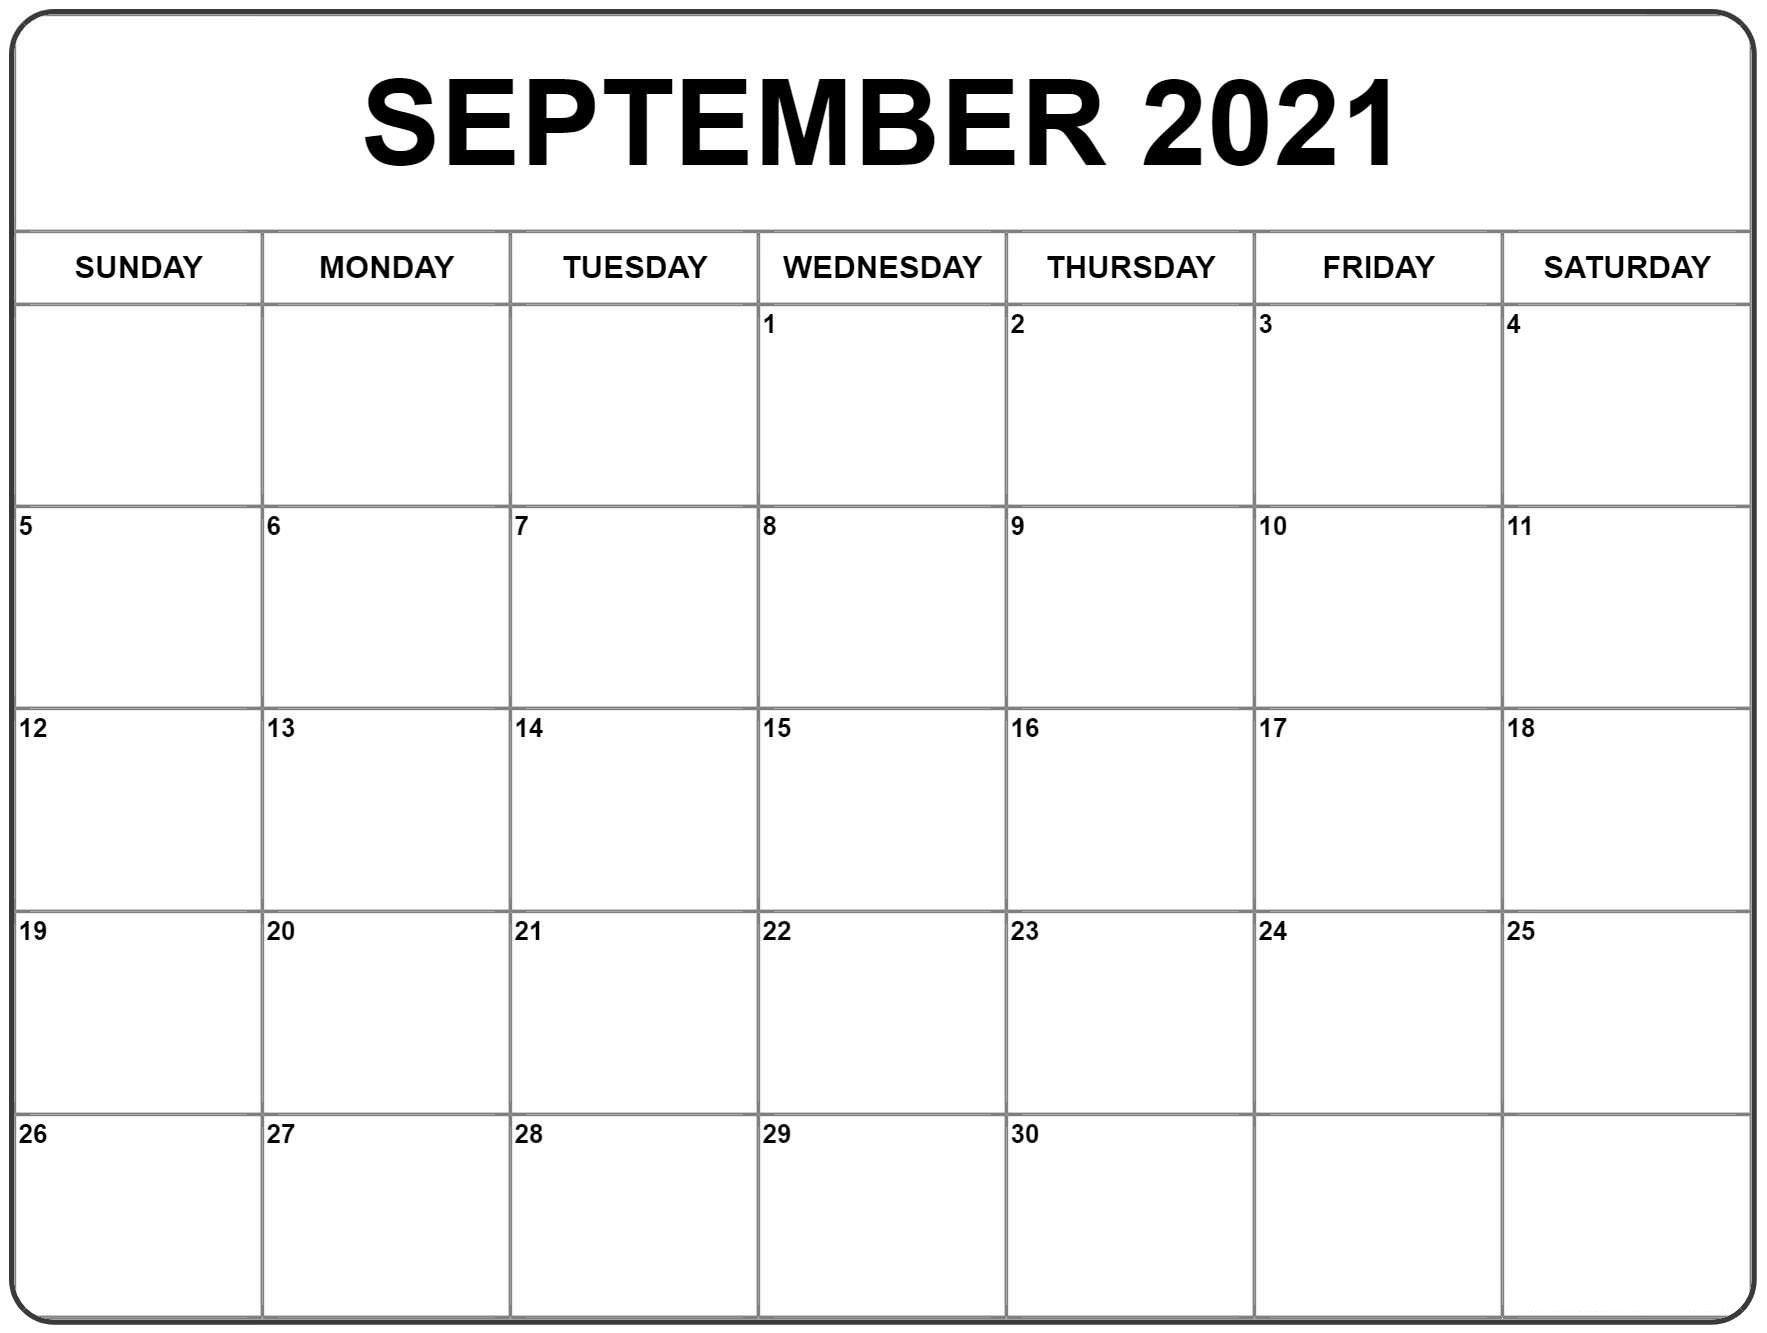 September 2021 Calendar | Blank monthly calendar template, Monthly